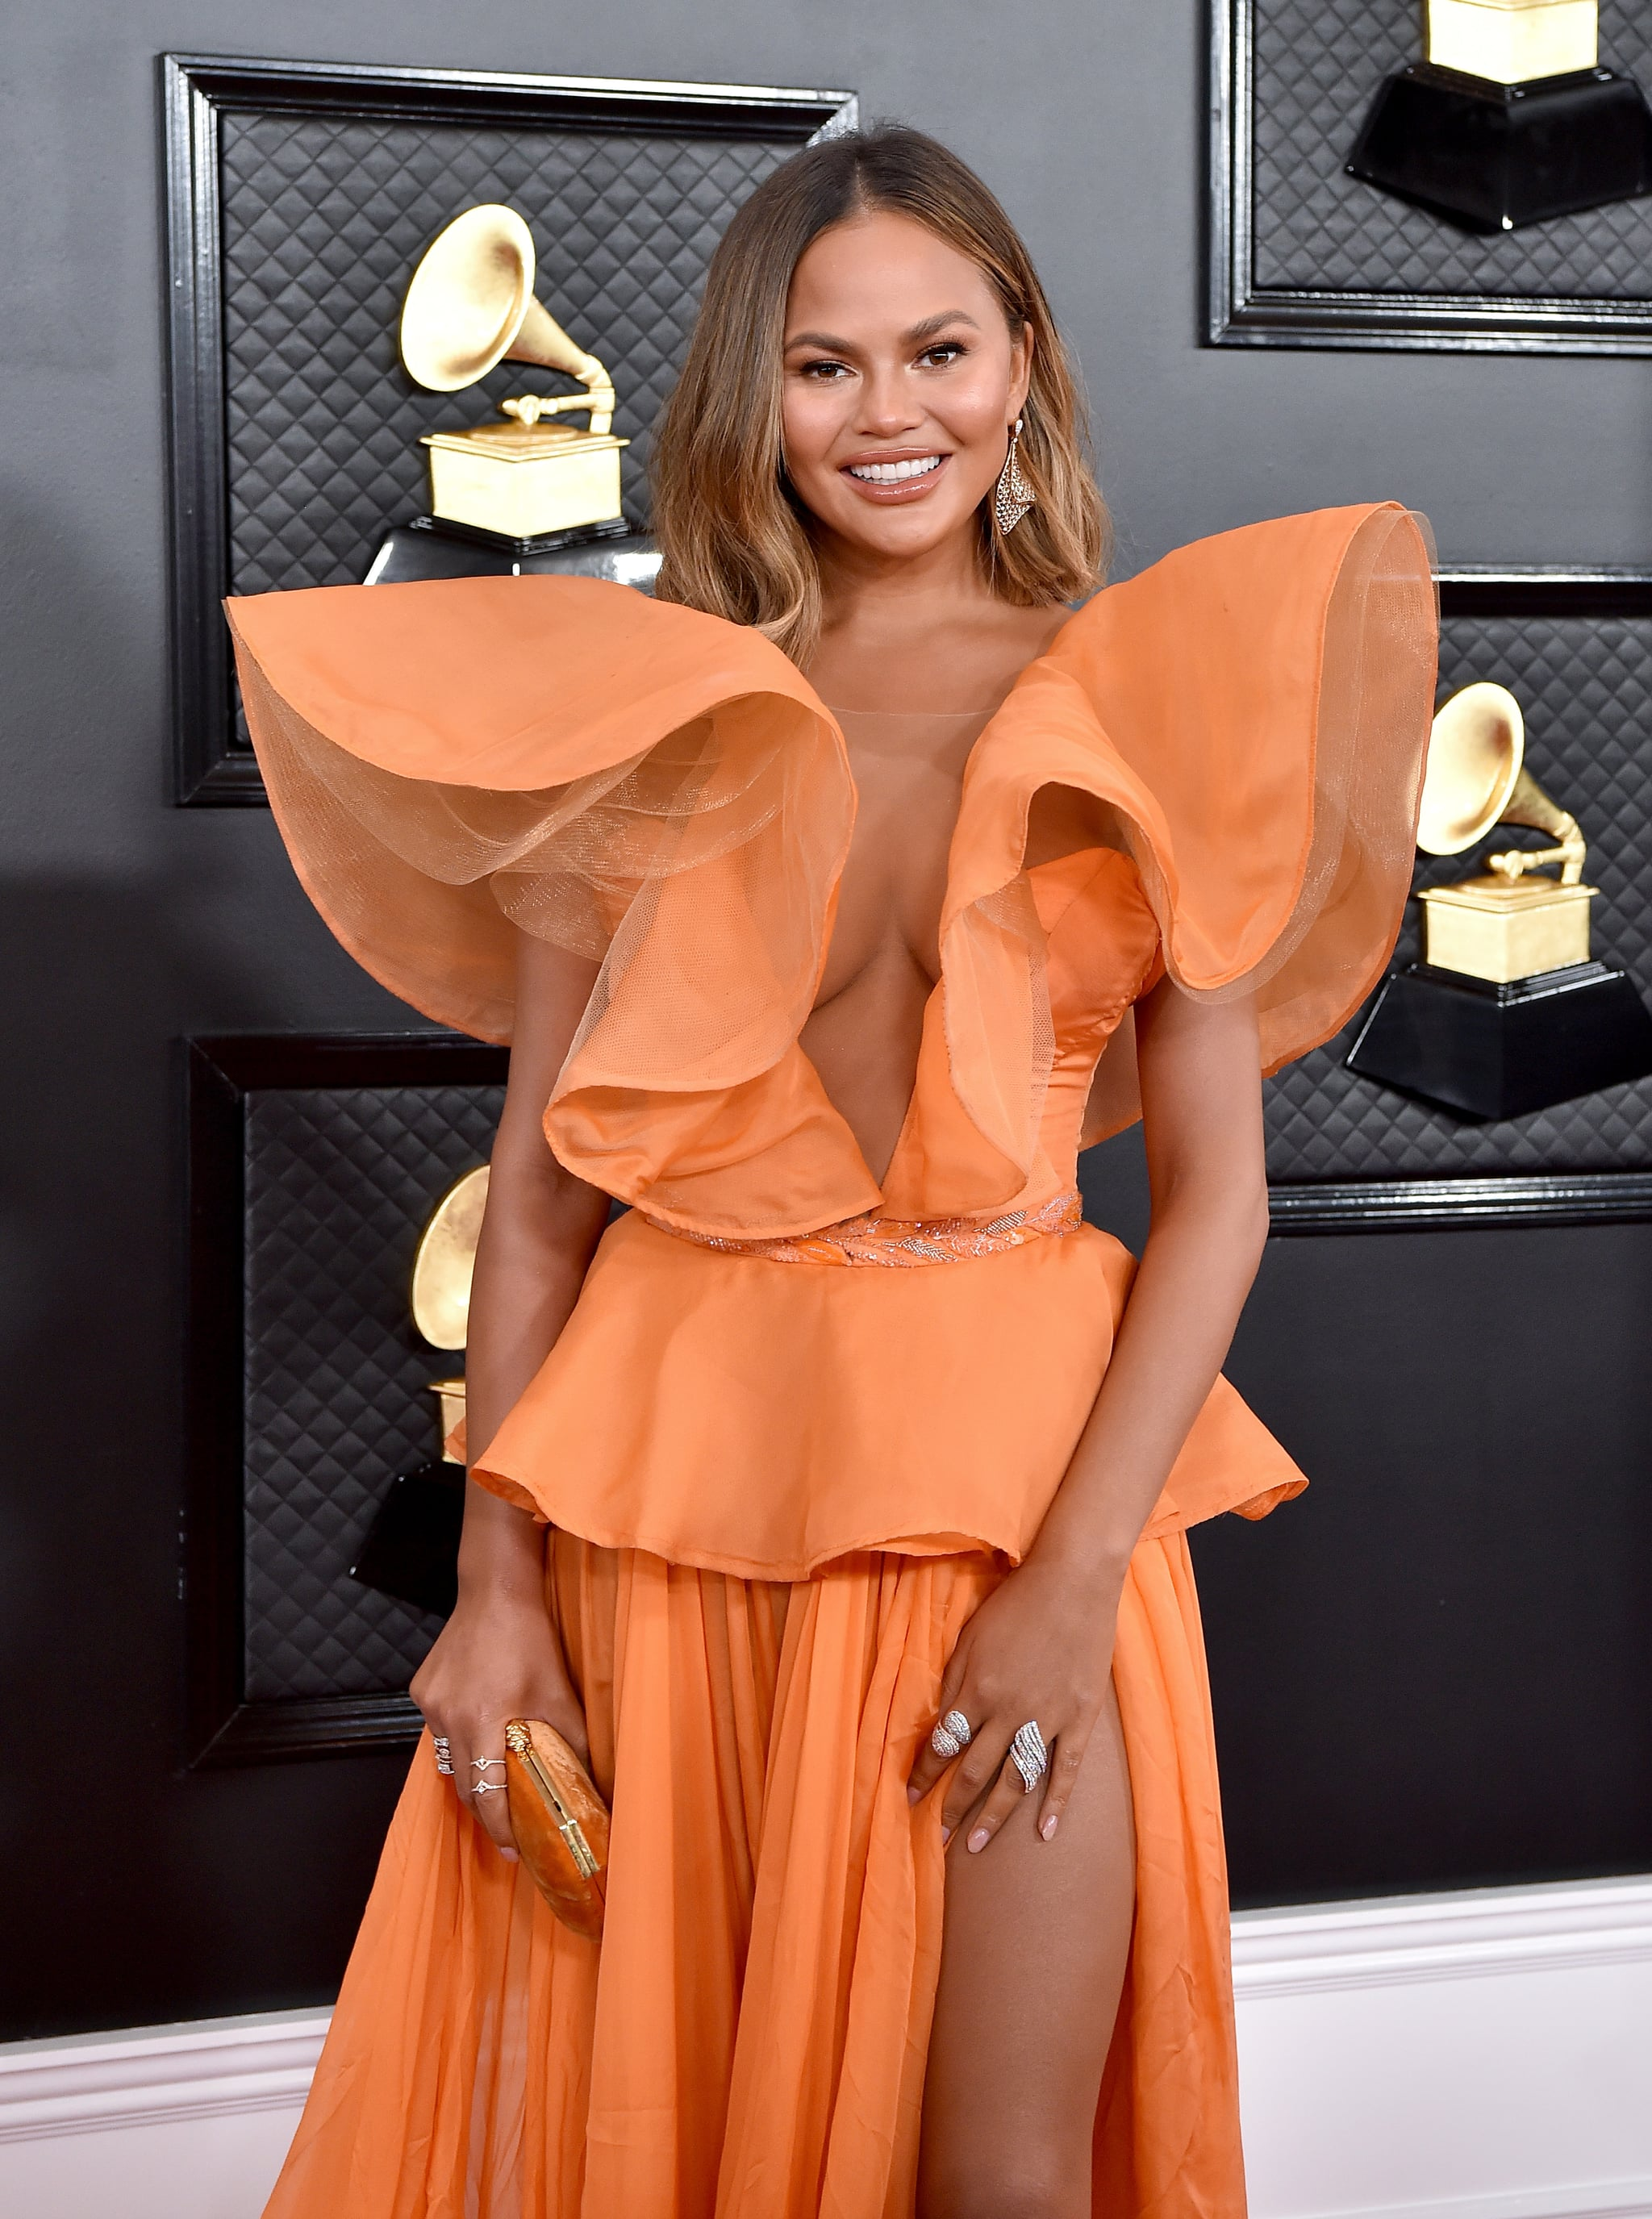 LOS ANGELES, CALIFORNIA - JANUARY 26: Chrissy Teigen attends the 62nd Annual GRAMMY Awards at Staples Centre on January 26, 2020 in Los Angeles, California. (Photo by Axelle/Bauer-Griffin/FilmMagic)